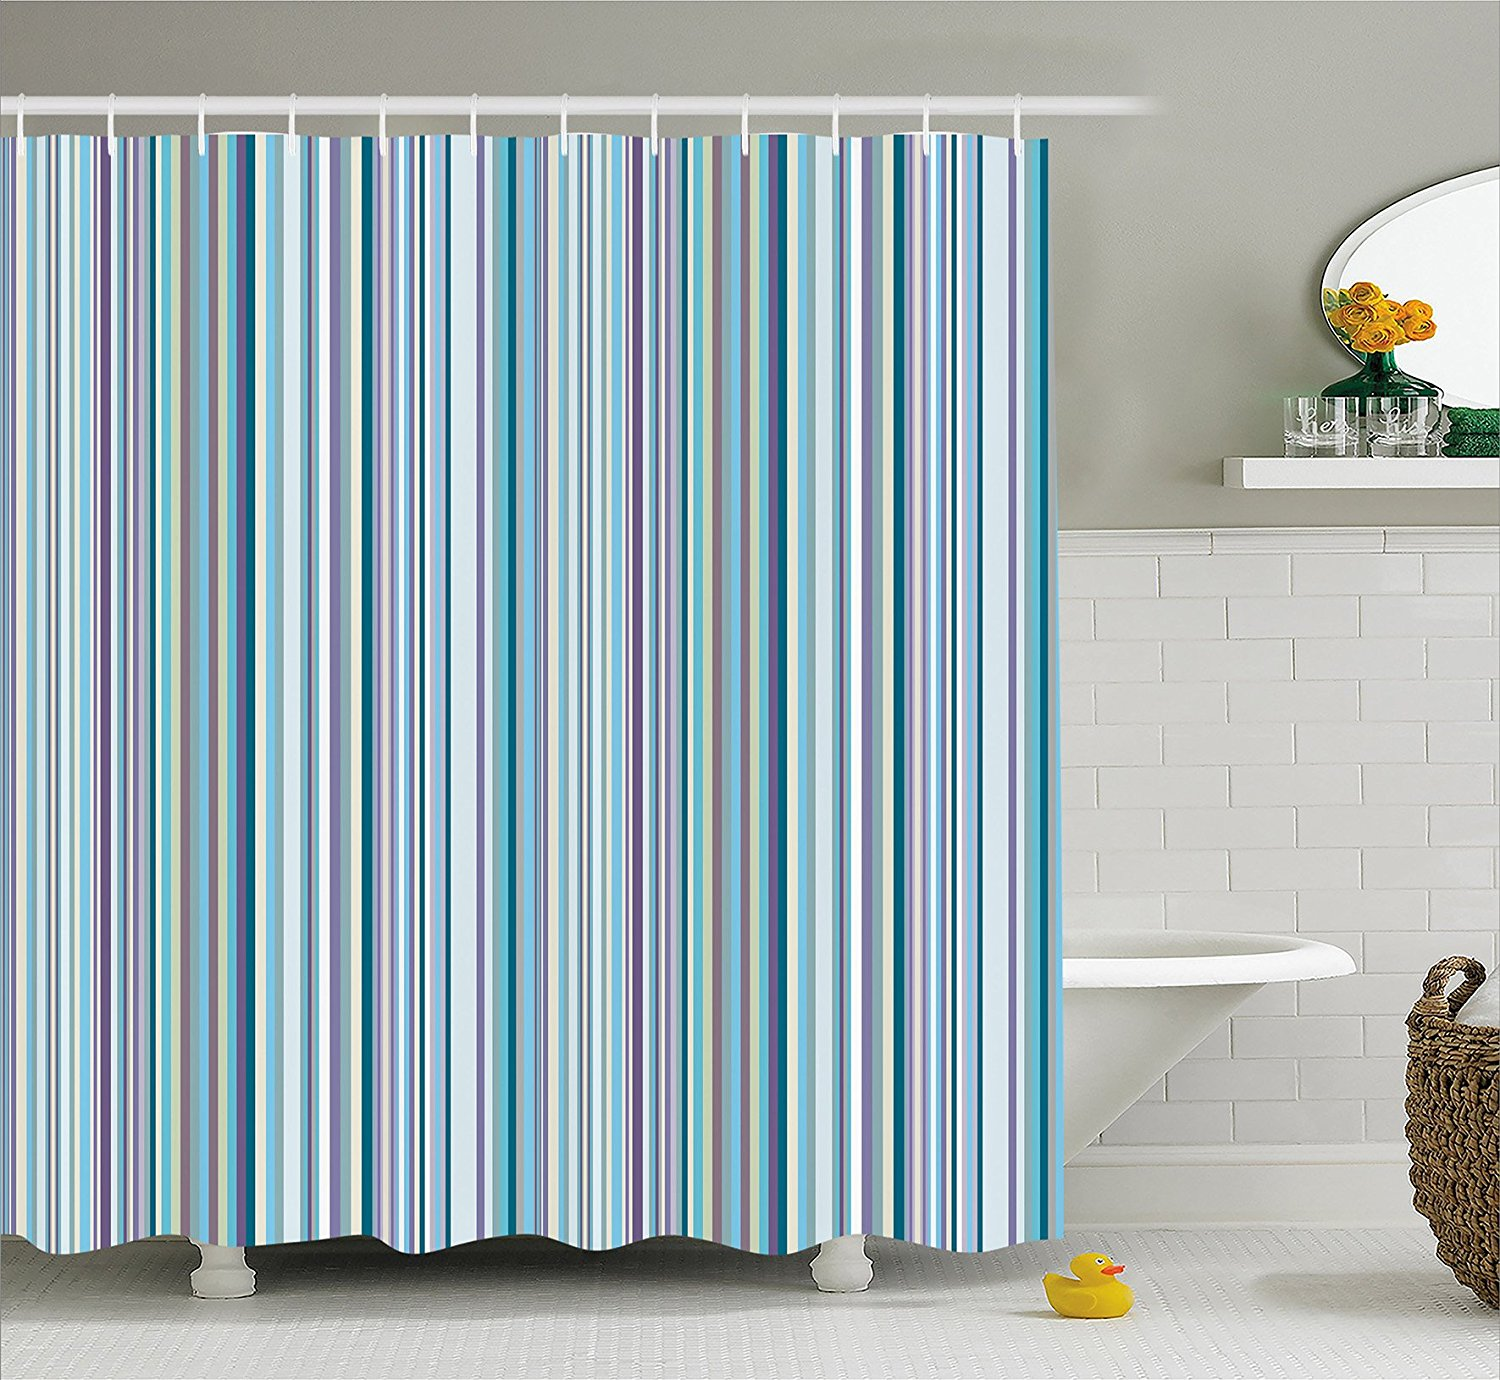 Us 13 02 43 Off Striped Shower Curtain Set Blue Purple Teal Aqua Lavender Colored Vertical Stripes Geometric Abstract Vintage Fabric Bath Decor In